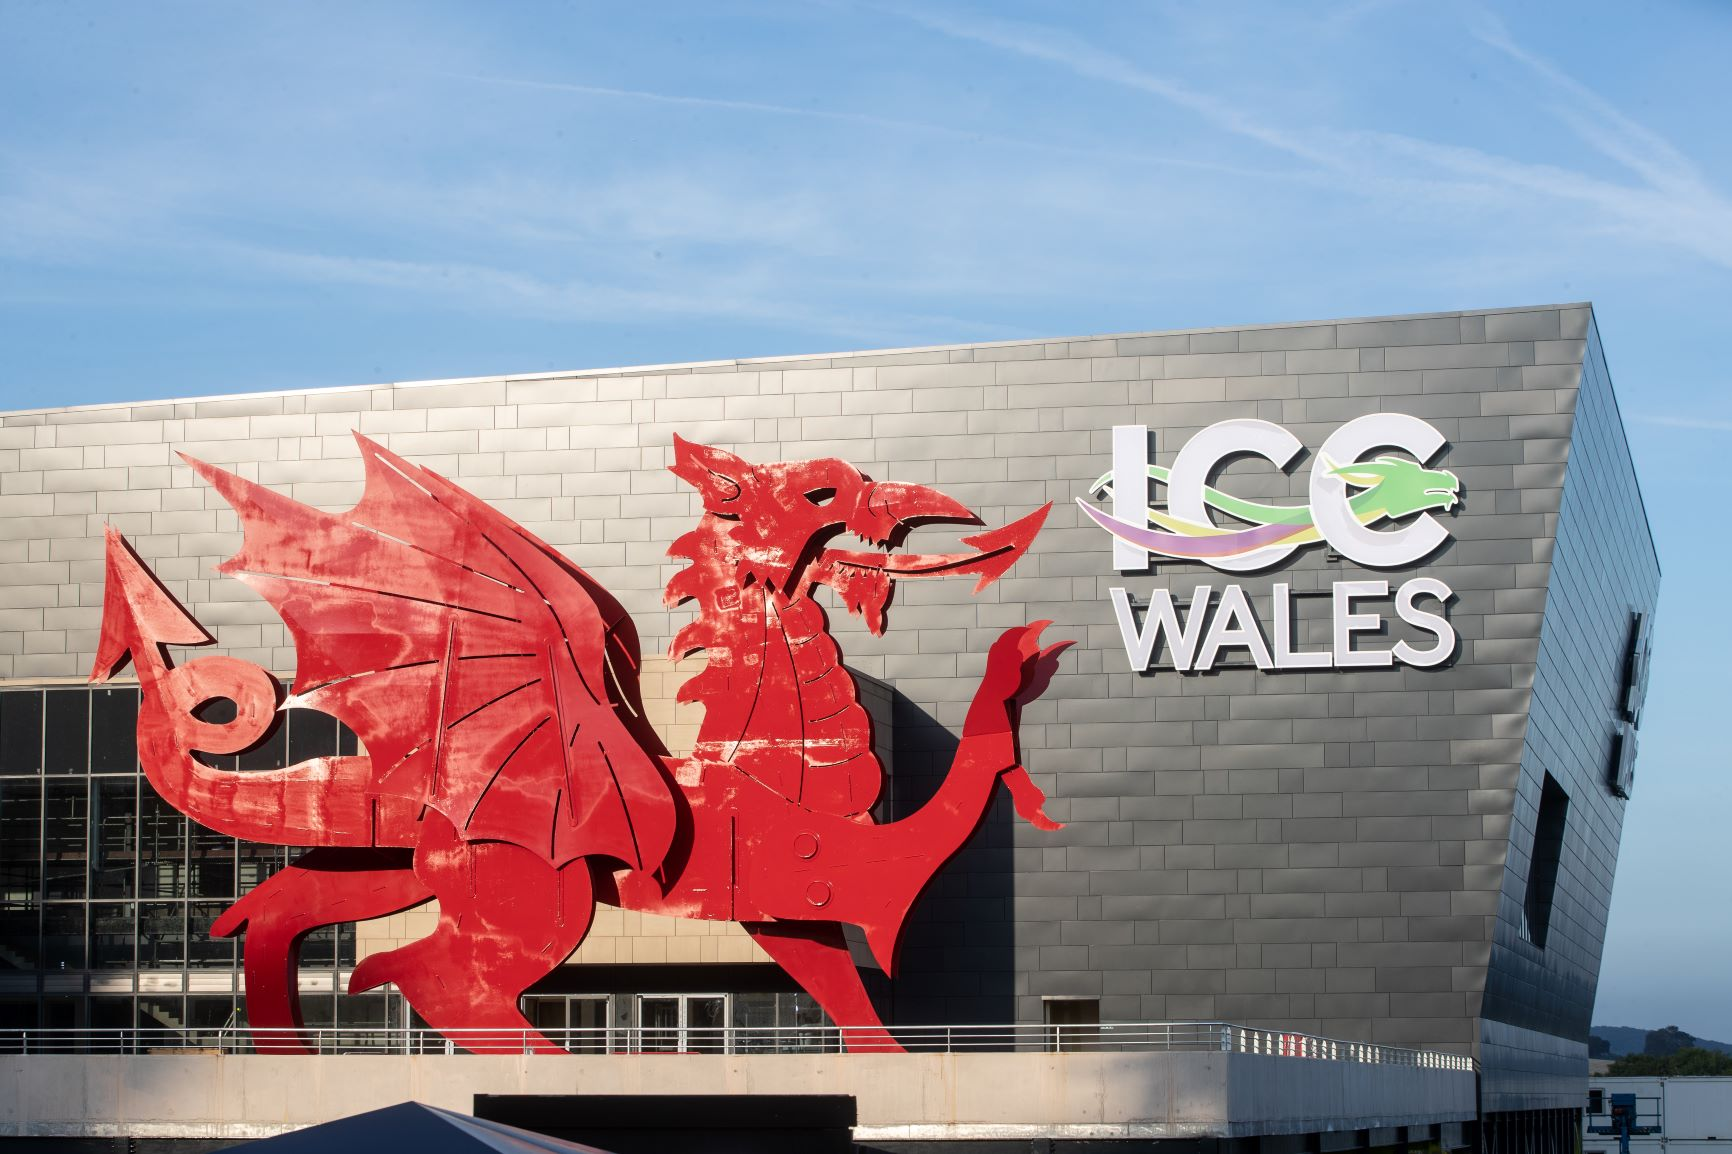 ICC Wales1